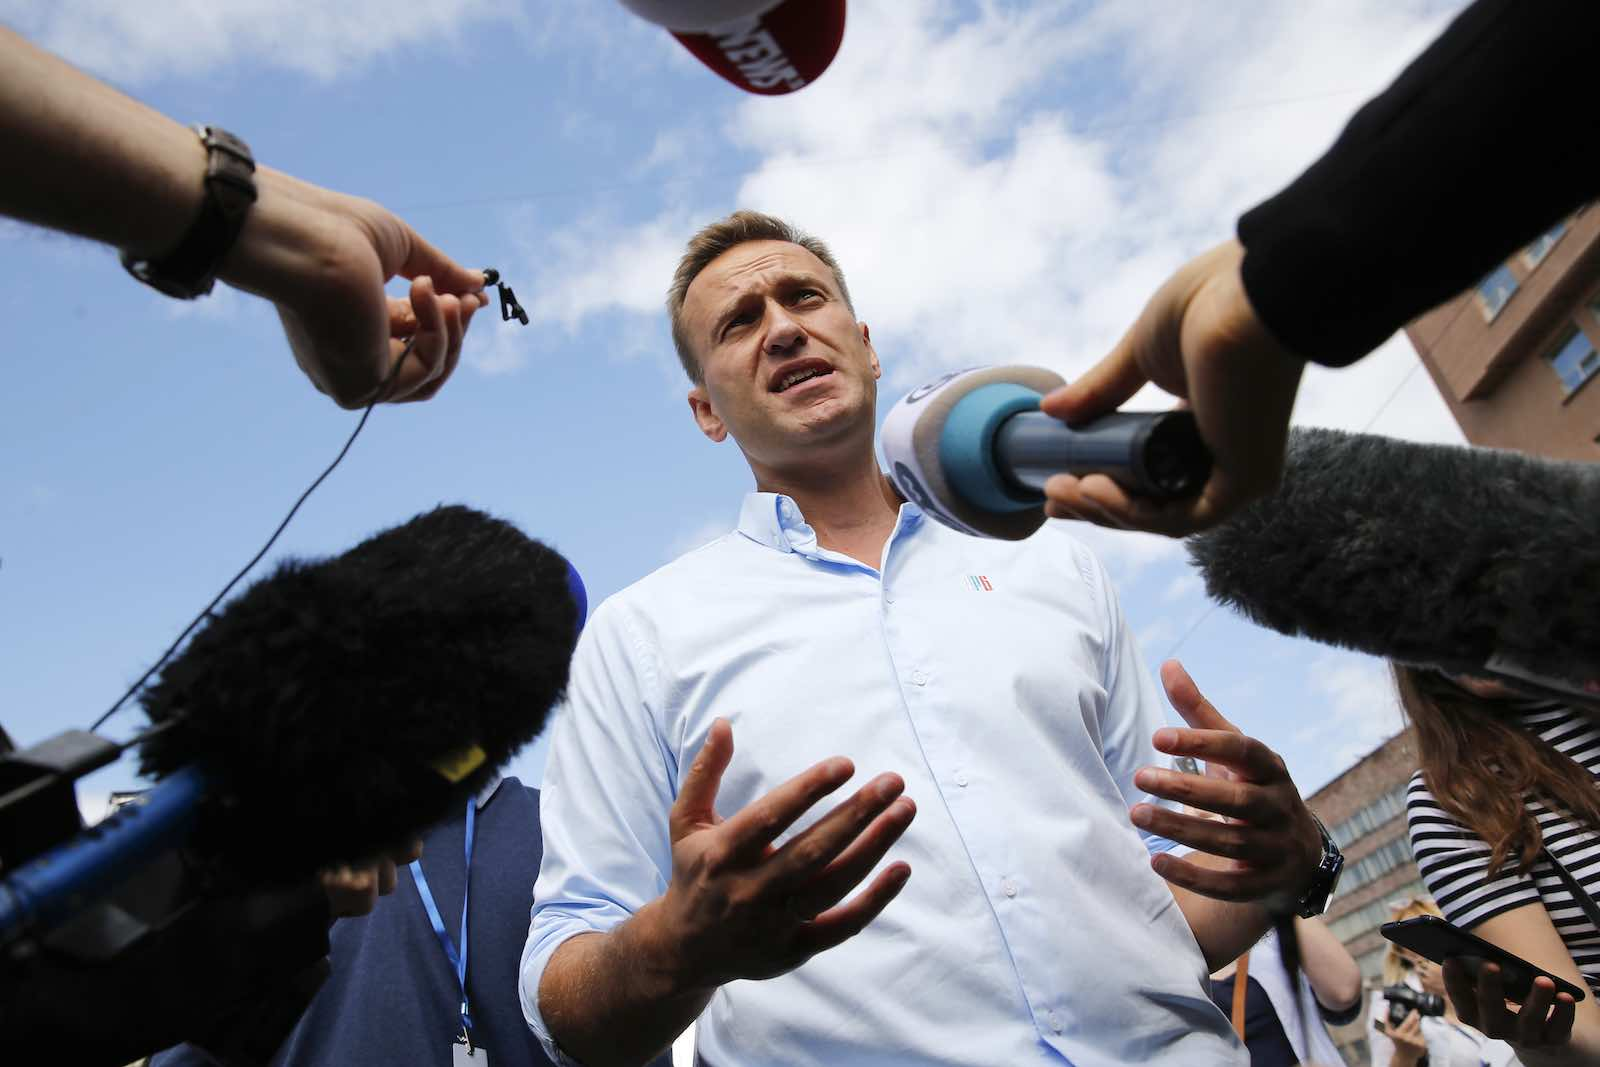 Russian opposition leader Alexei Navalny in July 2019 (Maxim Zmeyev/AFP via Getty Images)